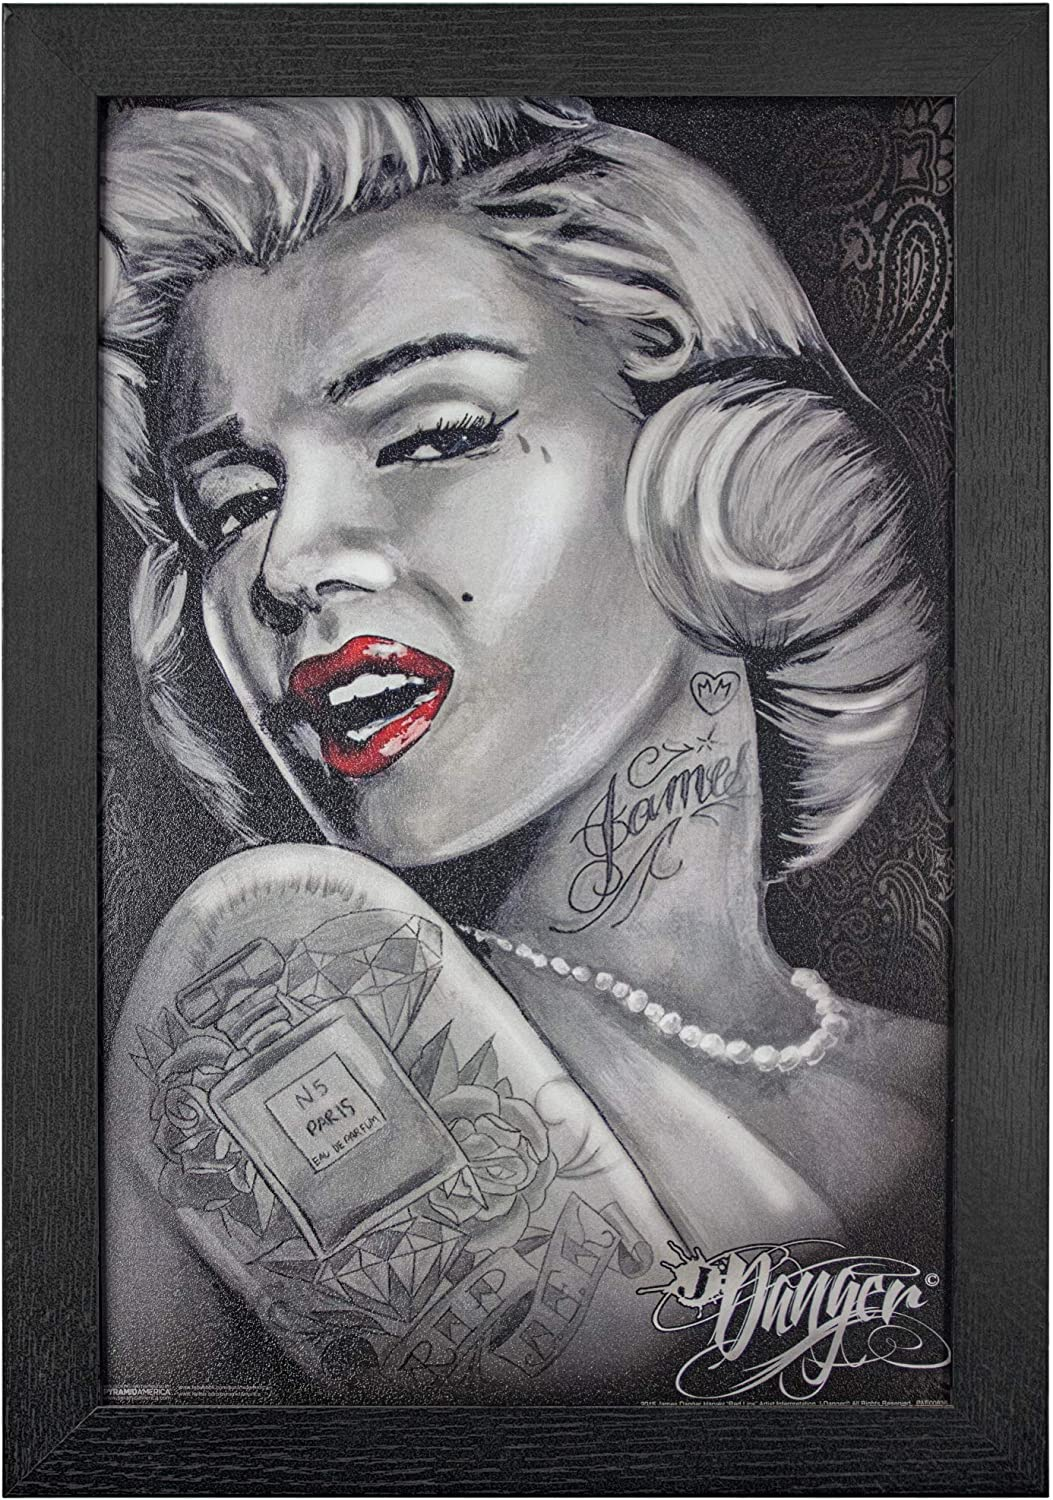 Marilyn Monroe Tattoo Art Locked and Loaded Poster in Black Wood Frame 24x36